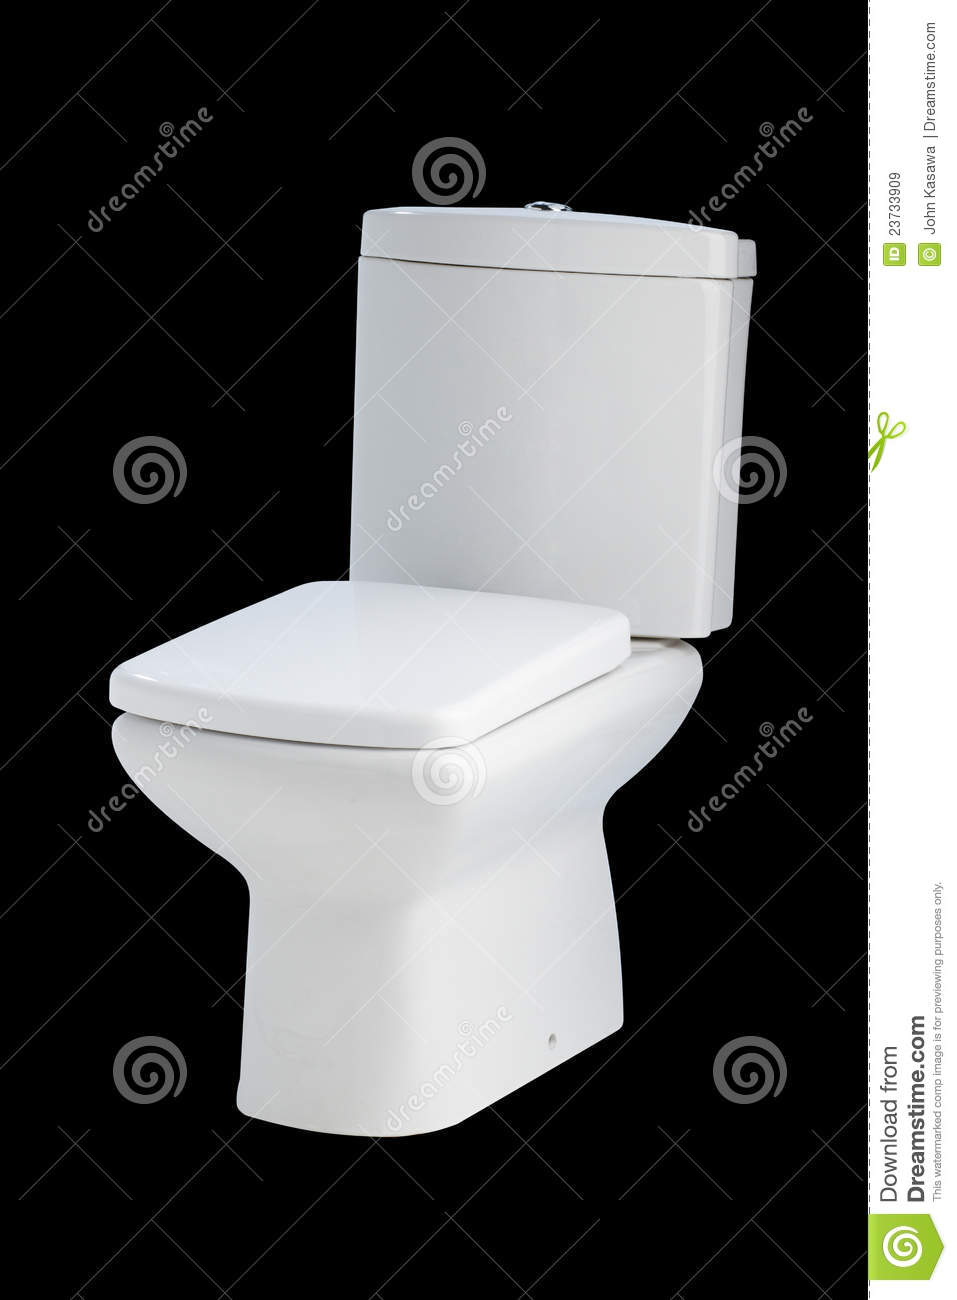 modern toilet bowl royalty free stock images  image  - background black bowl modern toilet